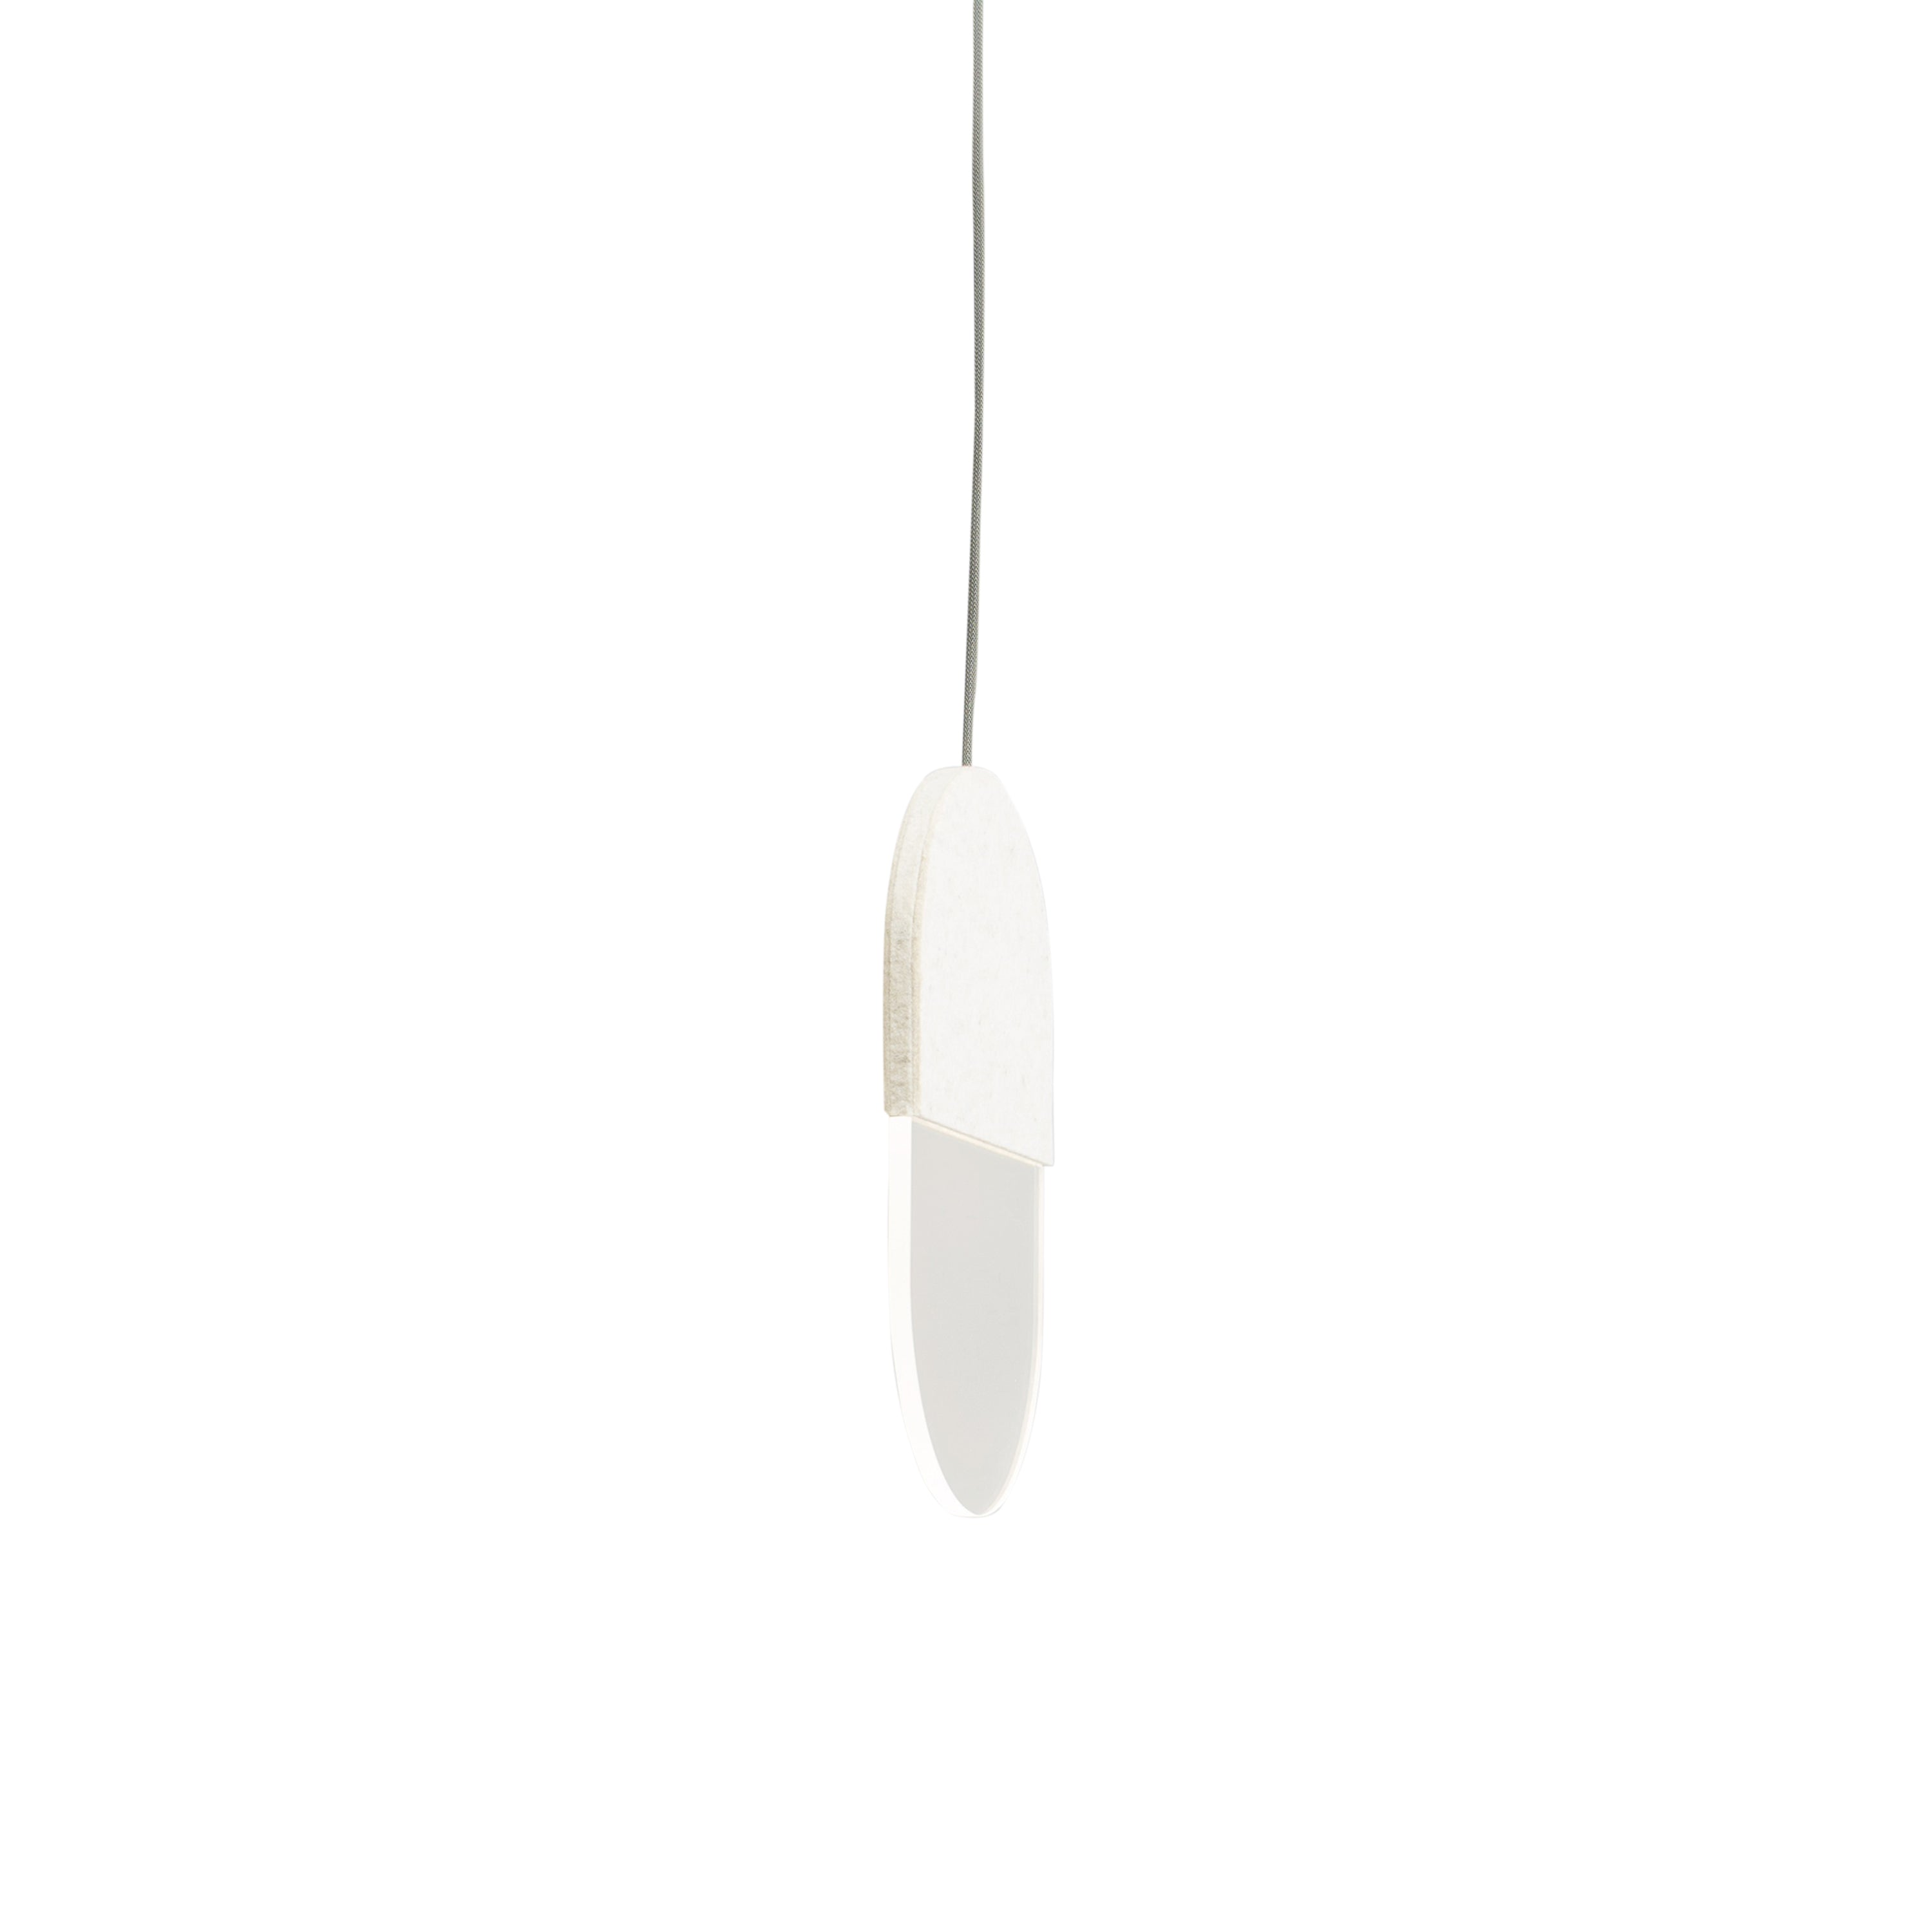 Slab Pendant Lights: 20 + White Wool